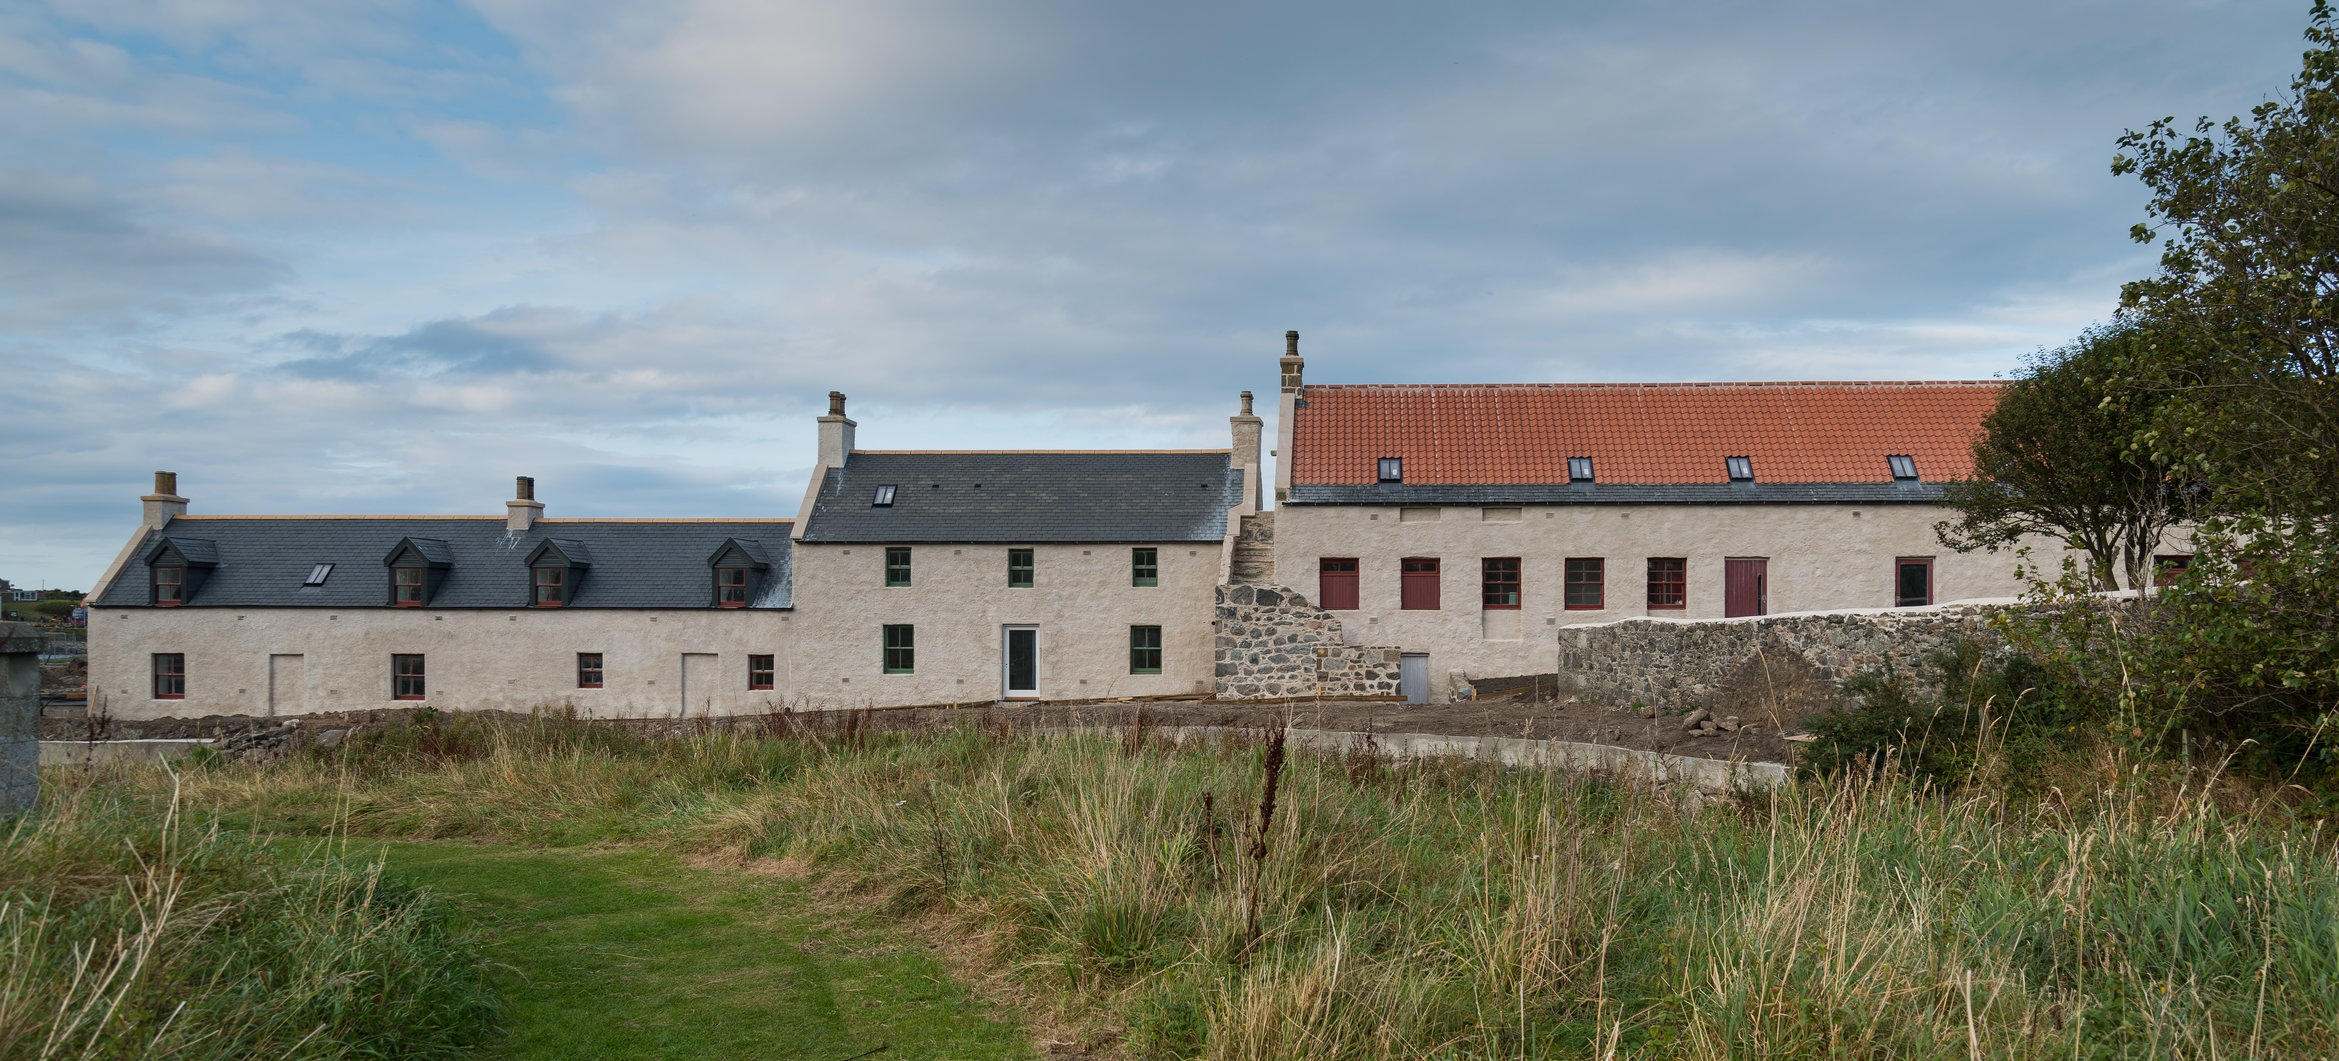 Sail Loft, Back Green, Portsoy, Aberdeenshire - one of the first HLF Heritage Enterprise projects that was also supported with an AHF working capital loan.